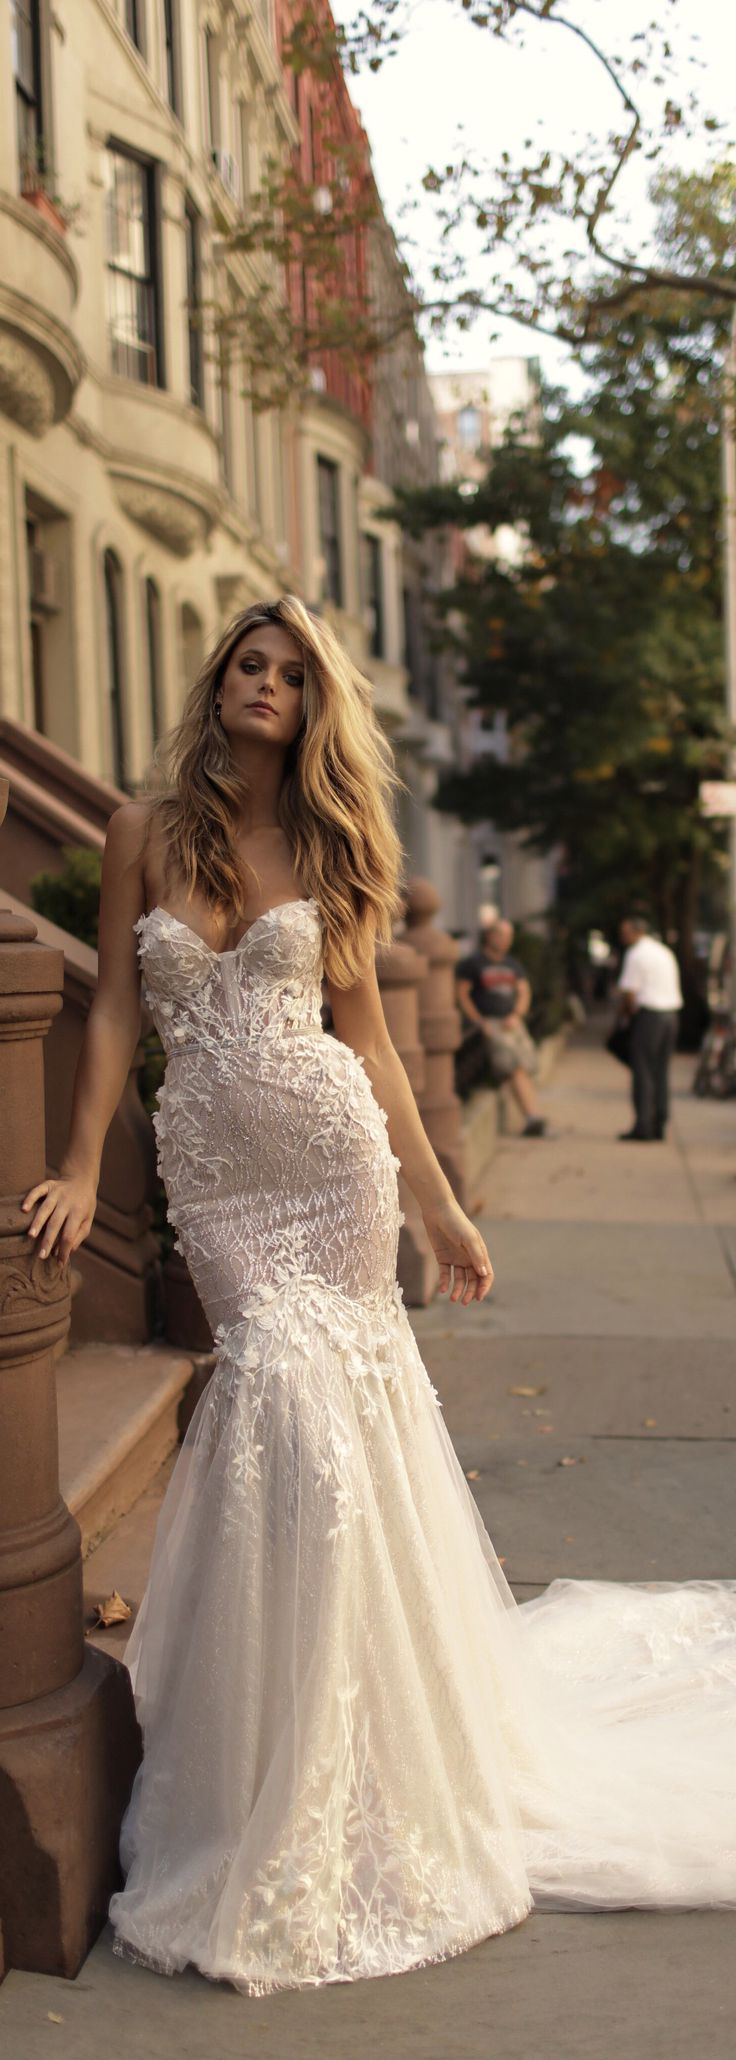 #BERTA style 17-110 from the new Fall collection <3